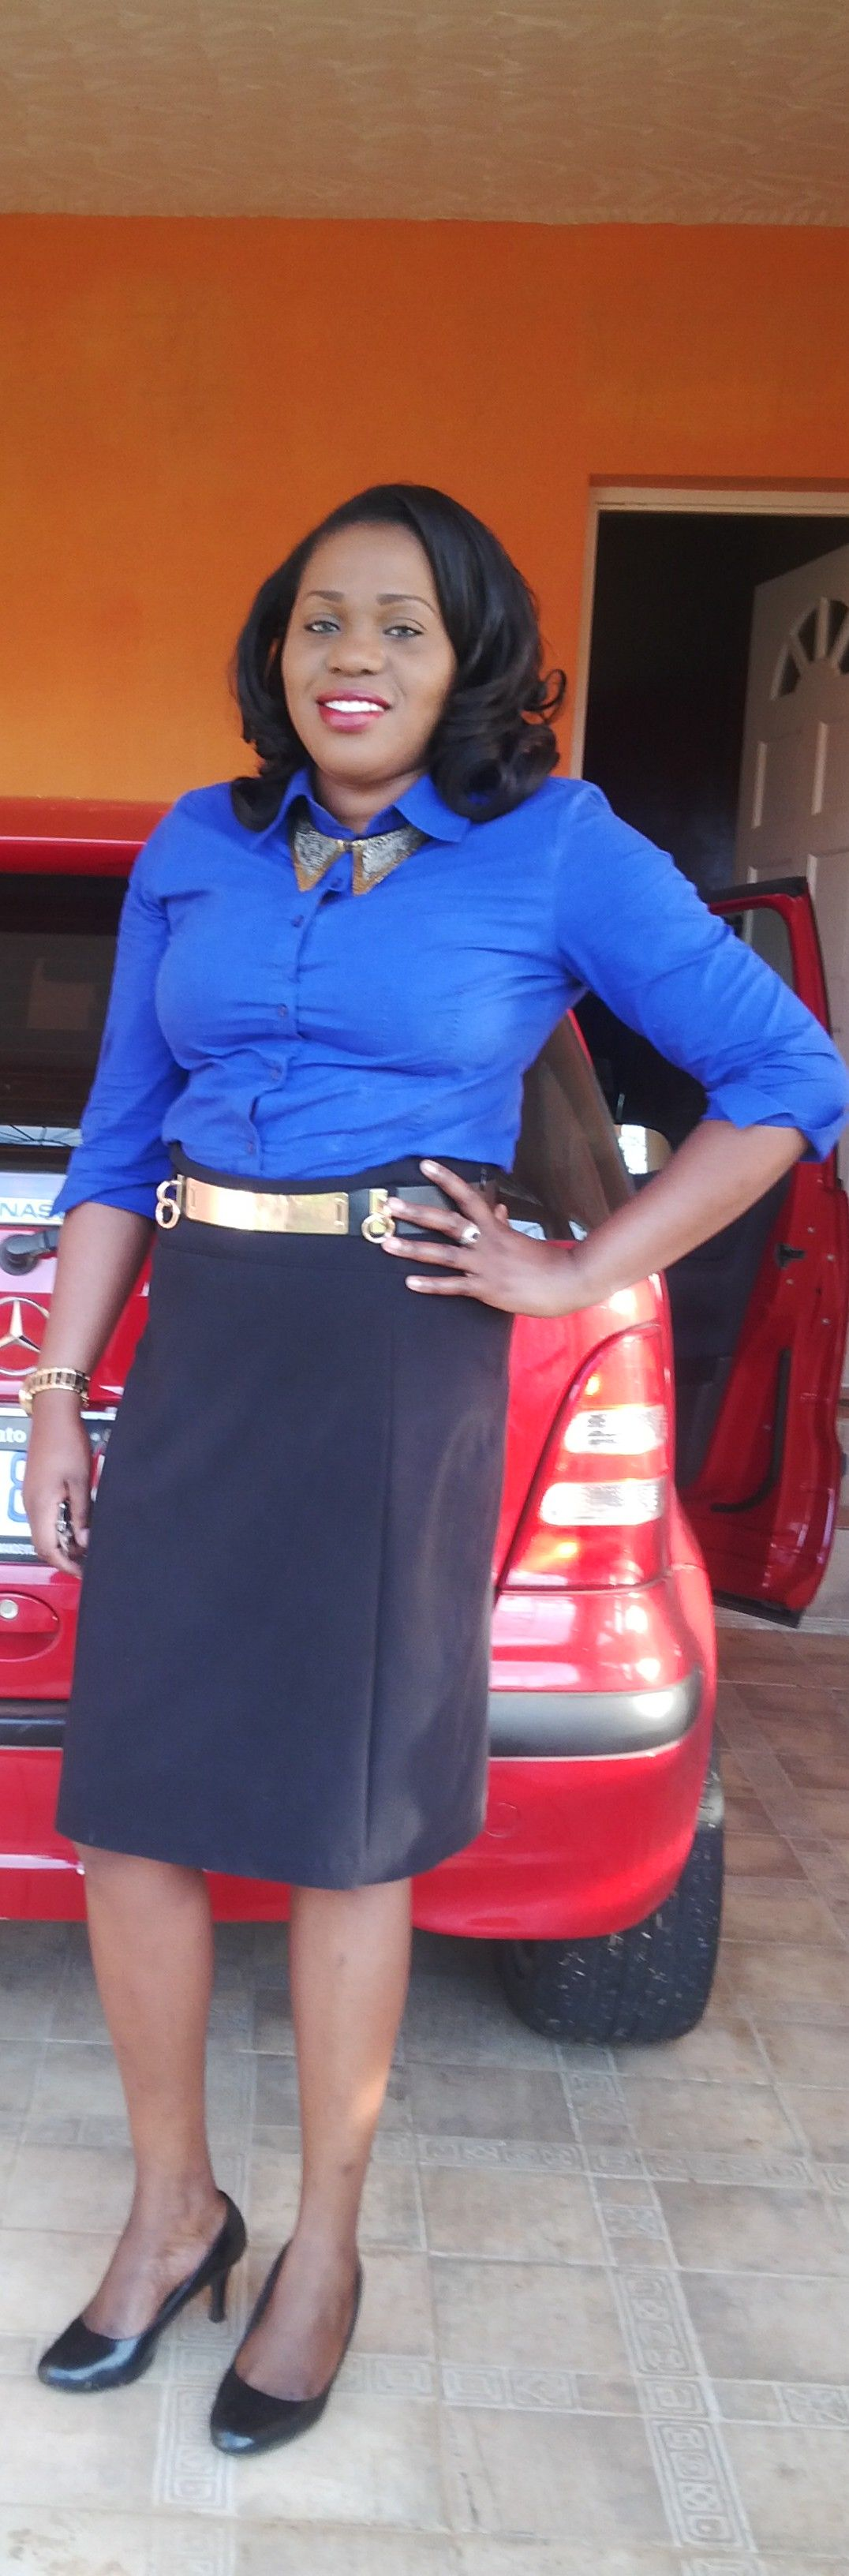 Day 25: top by Covington, Asos belt, skirt tag reads Fashion Collection, shoes by Predictions